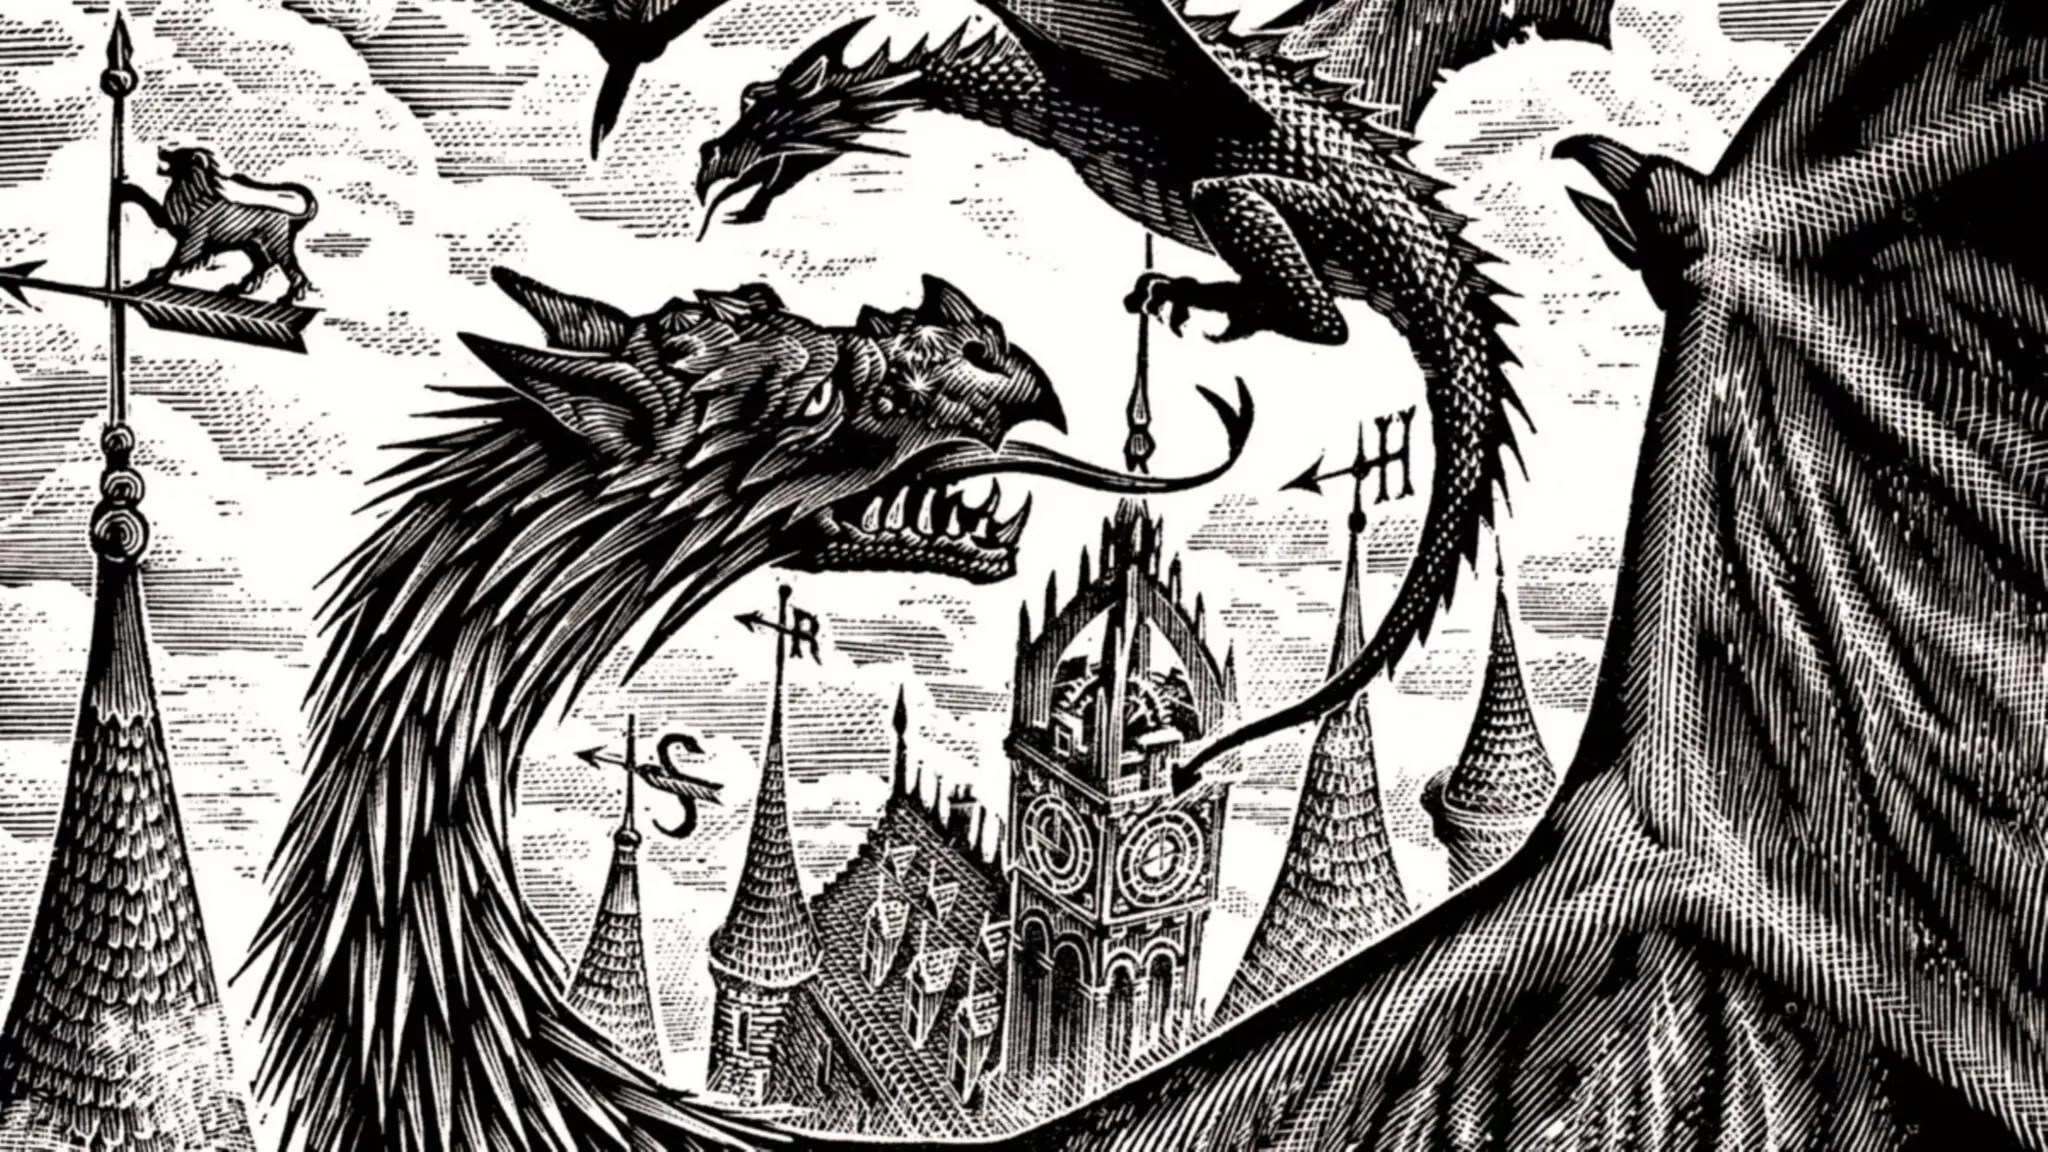 andrew davidson jk rowling adult harry potter illustration